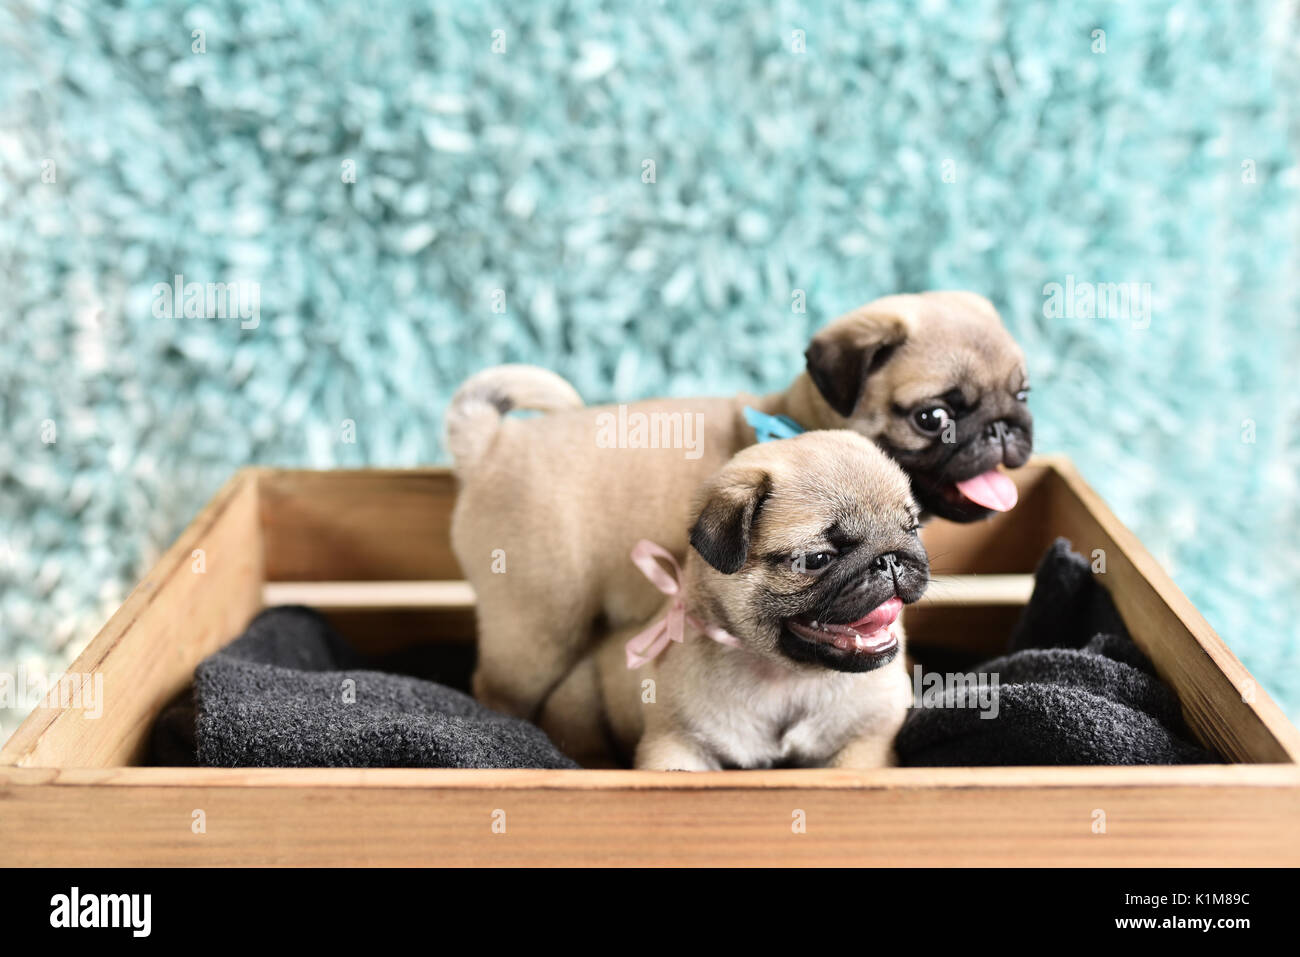 Two happy pug puppies sitting in a box. Pugs have tongues out. Brother with sister. - Stock Image